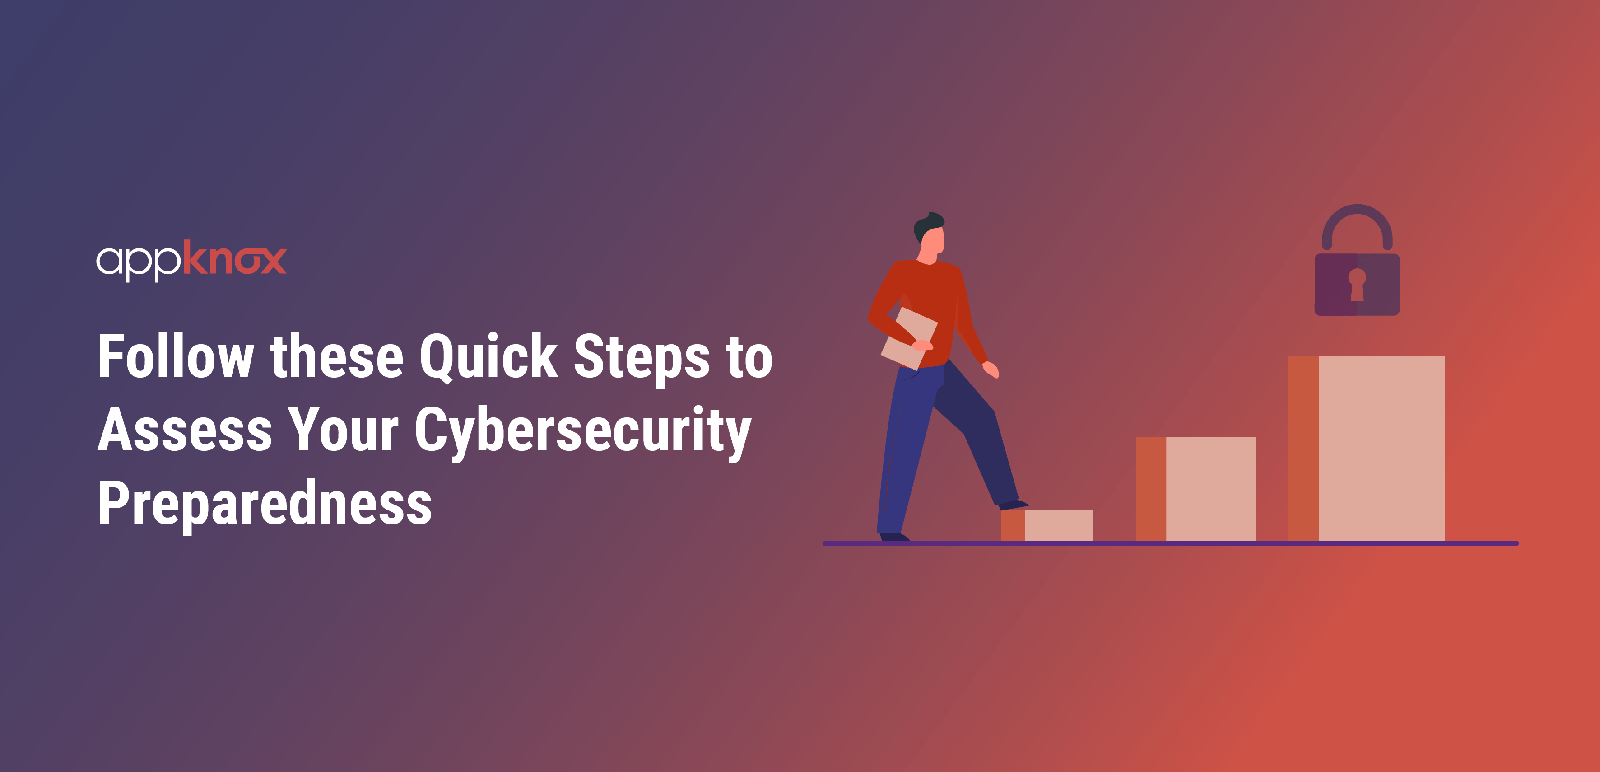 Steps to Assess Your Cybersecurity Preparedness